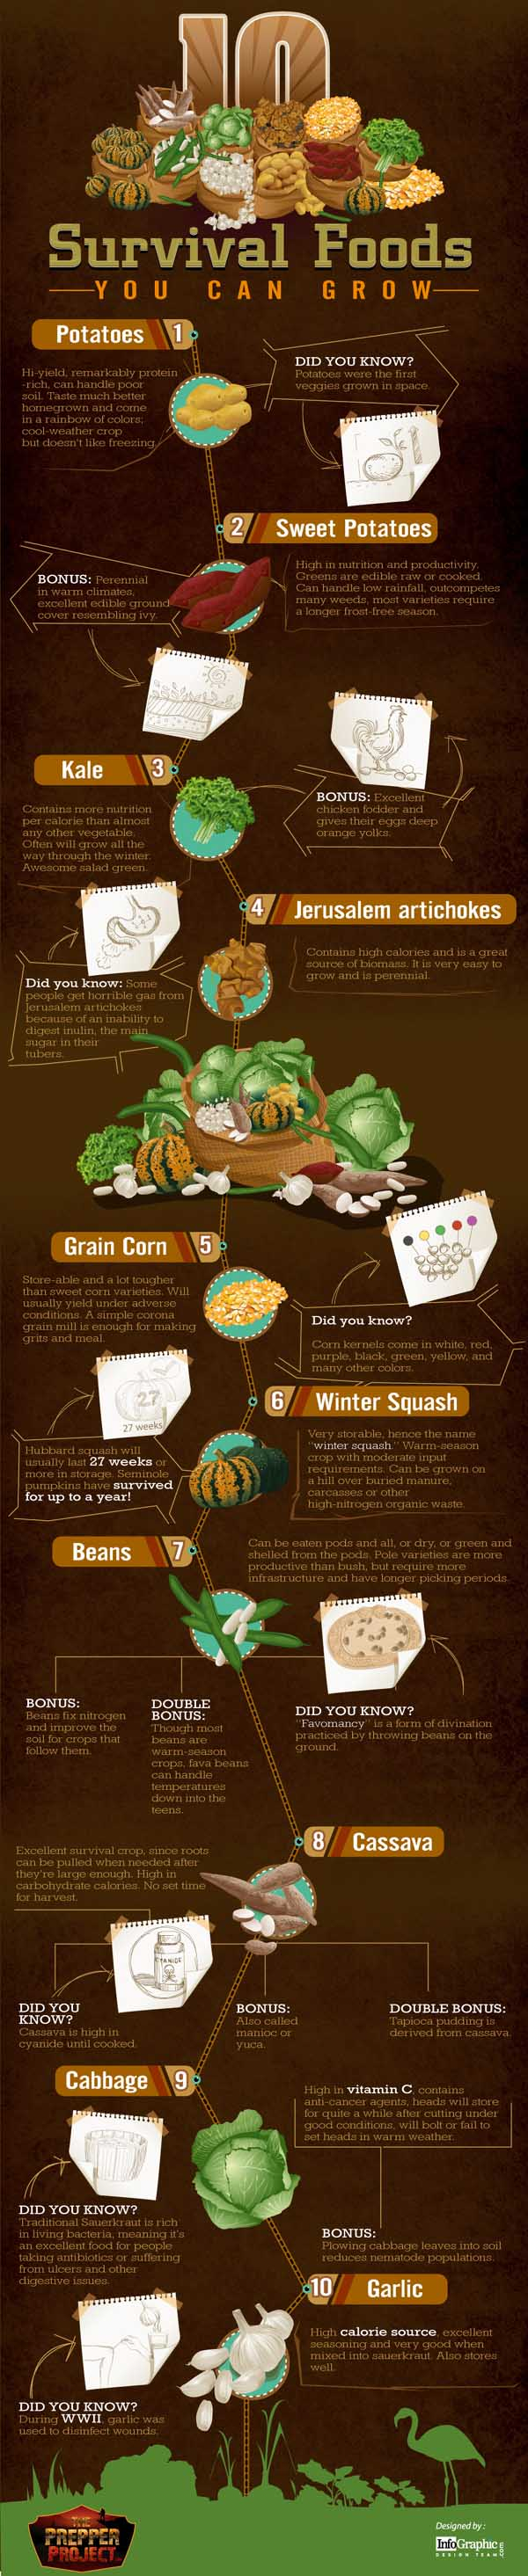 Survival Food Graphic